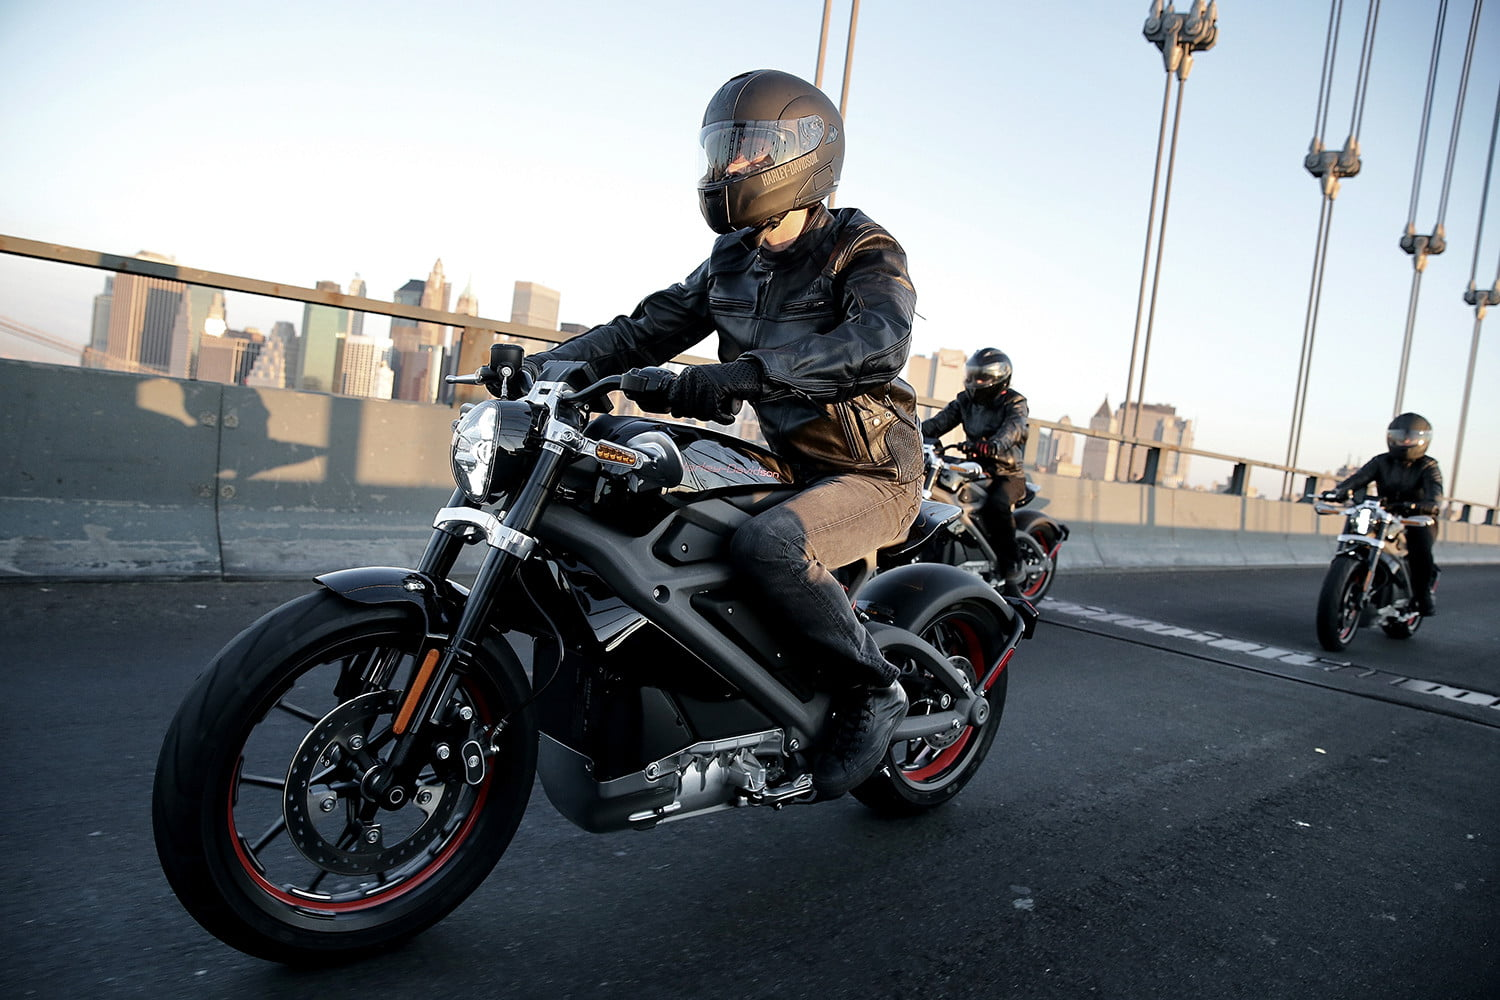 Harley Davidson Invests In Alta Motors To Develop Electric